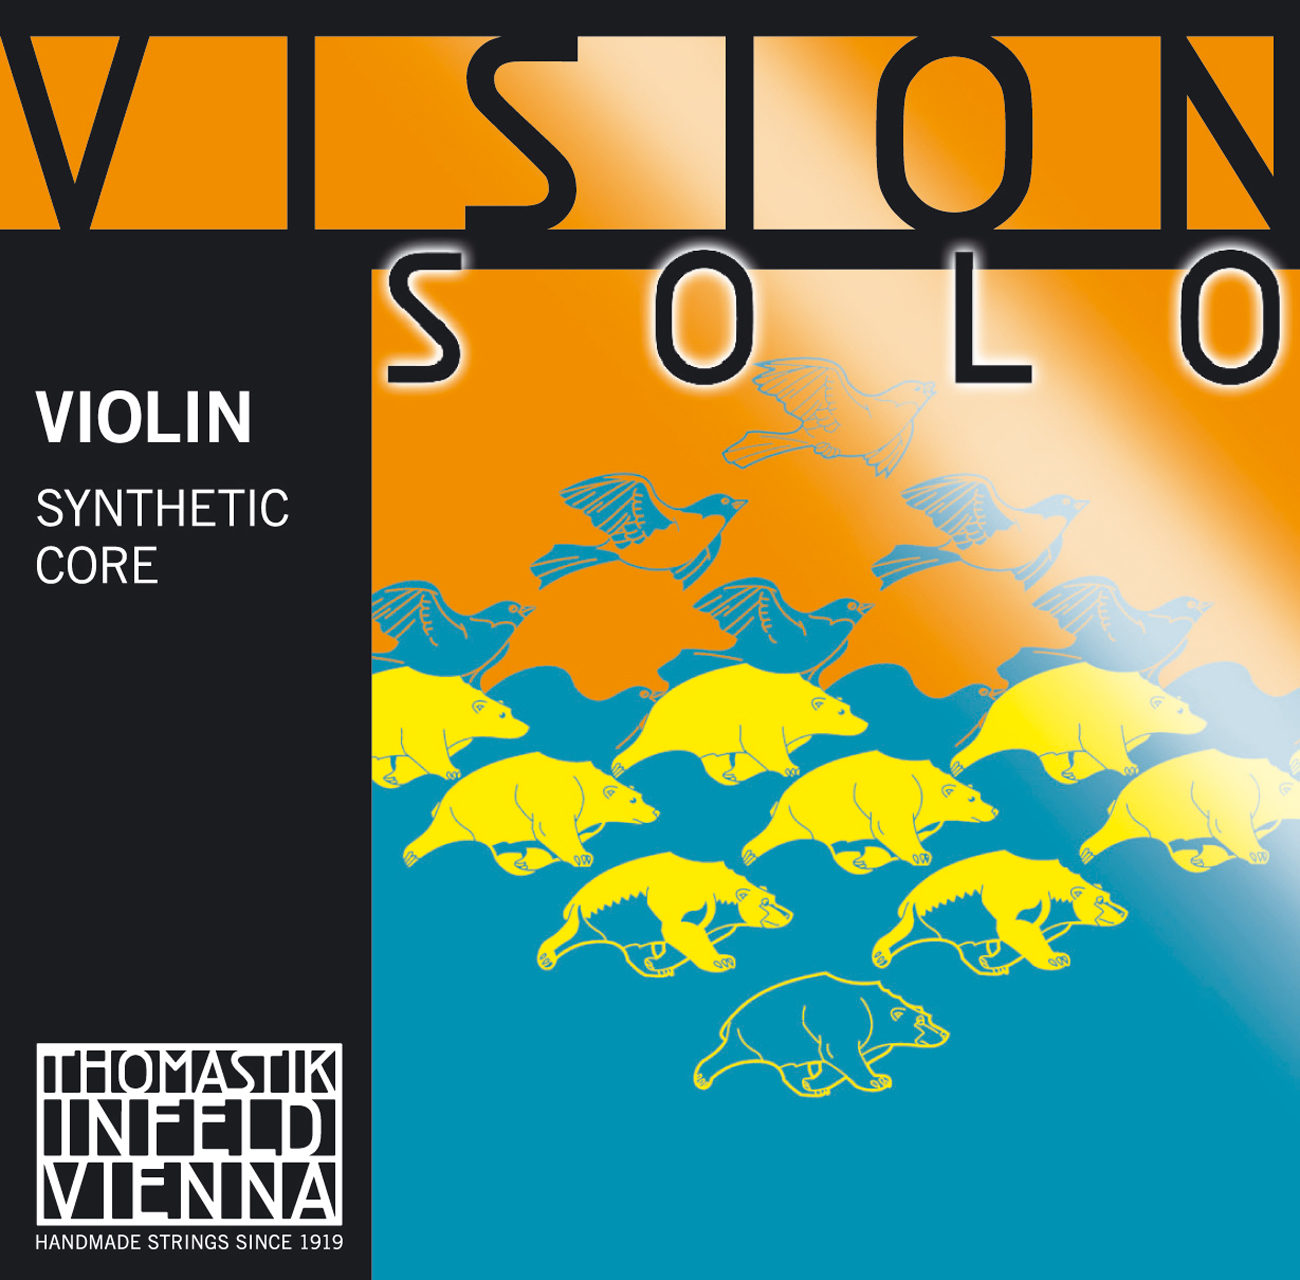 Vision Solo Violin Set